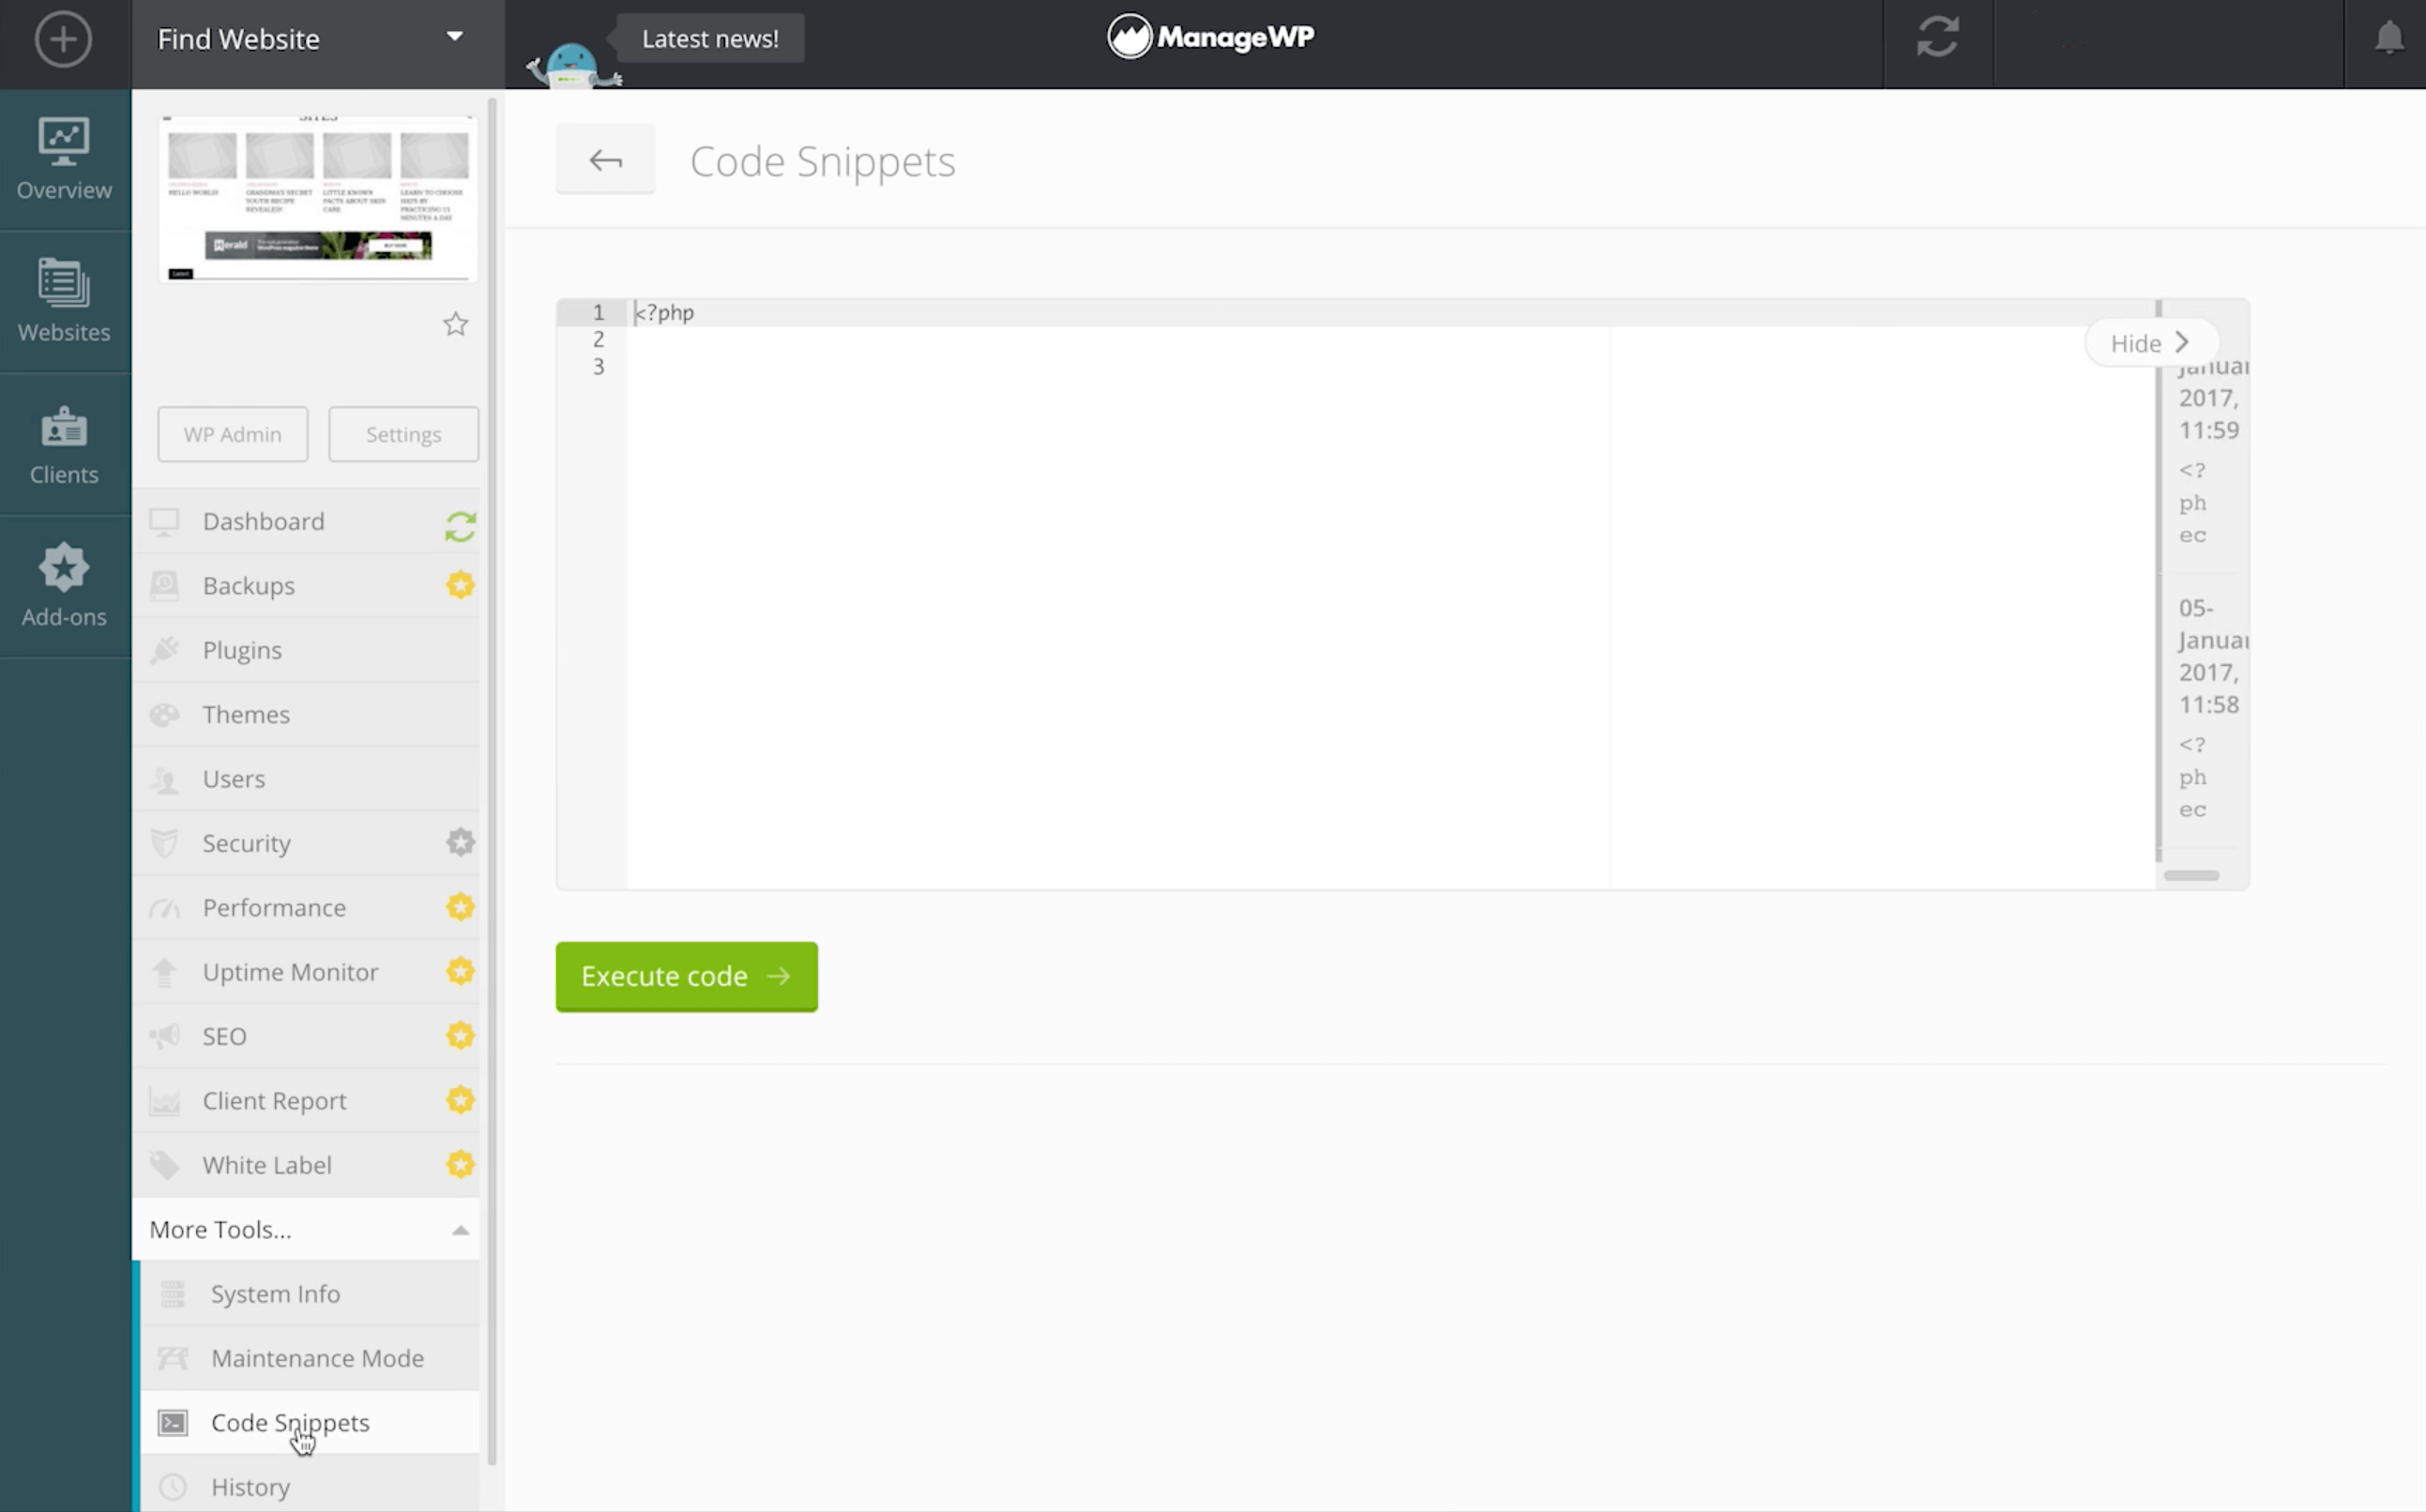 Inserting a pingback snippet in the ManageWP dashboard.